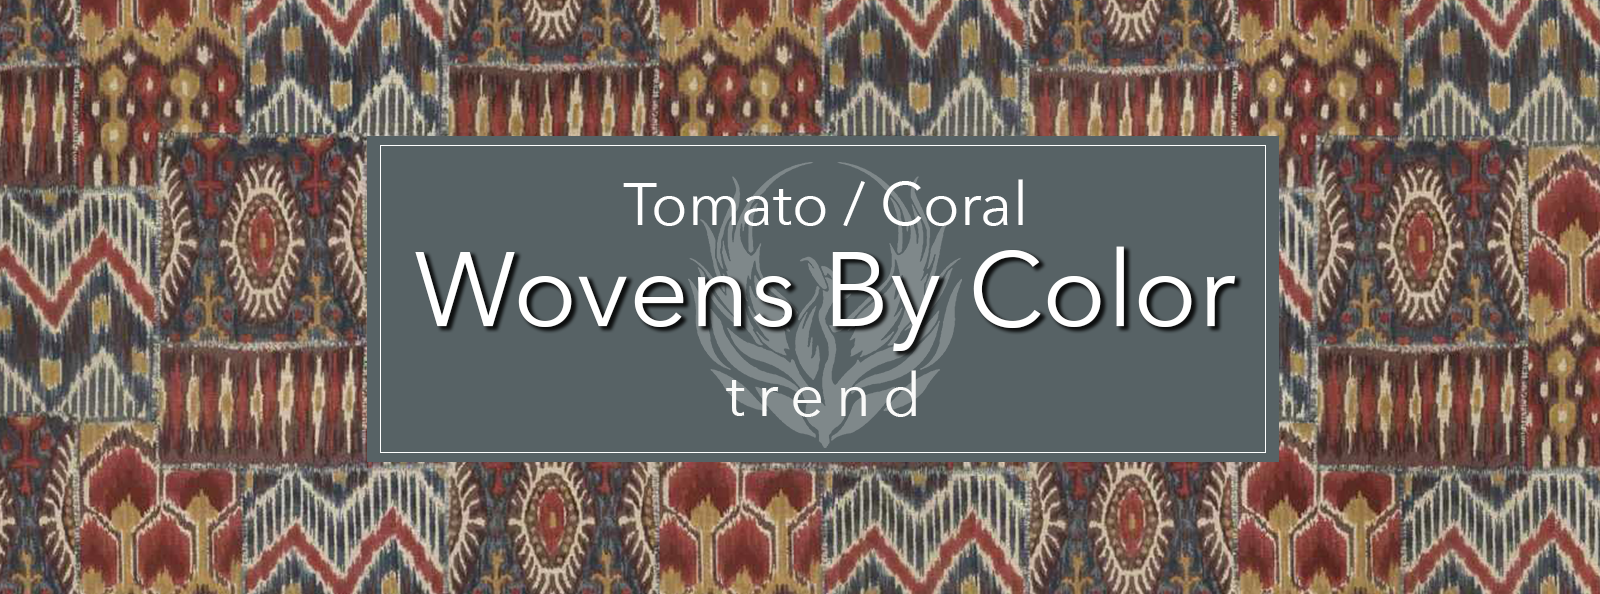 Wovens by Color - Tomato / Coral by Trend